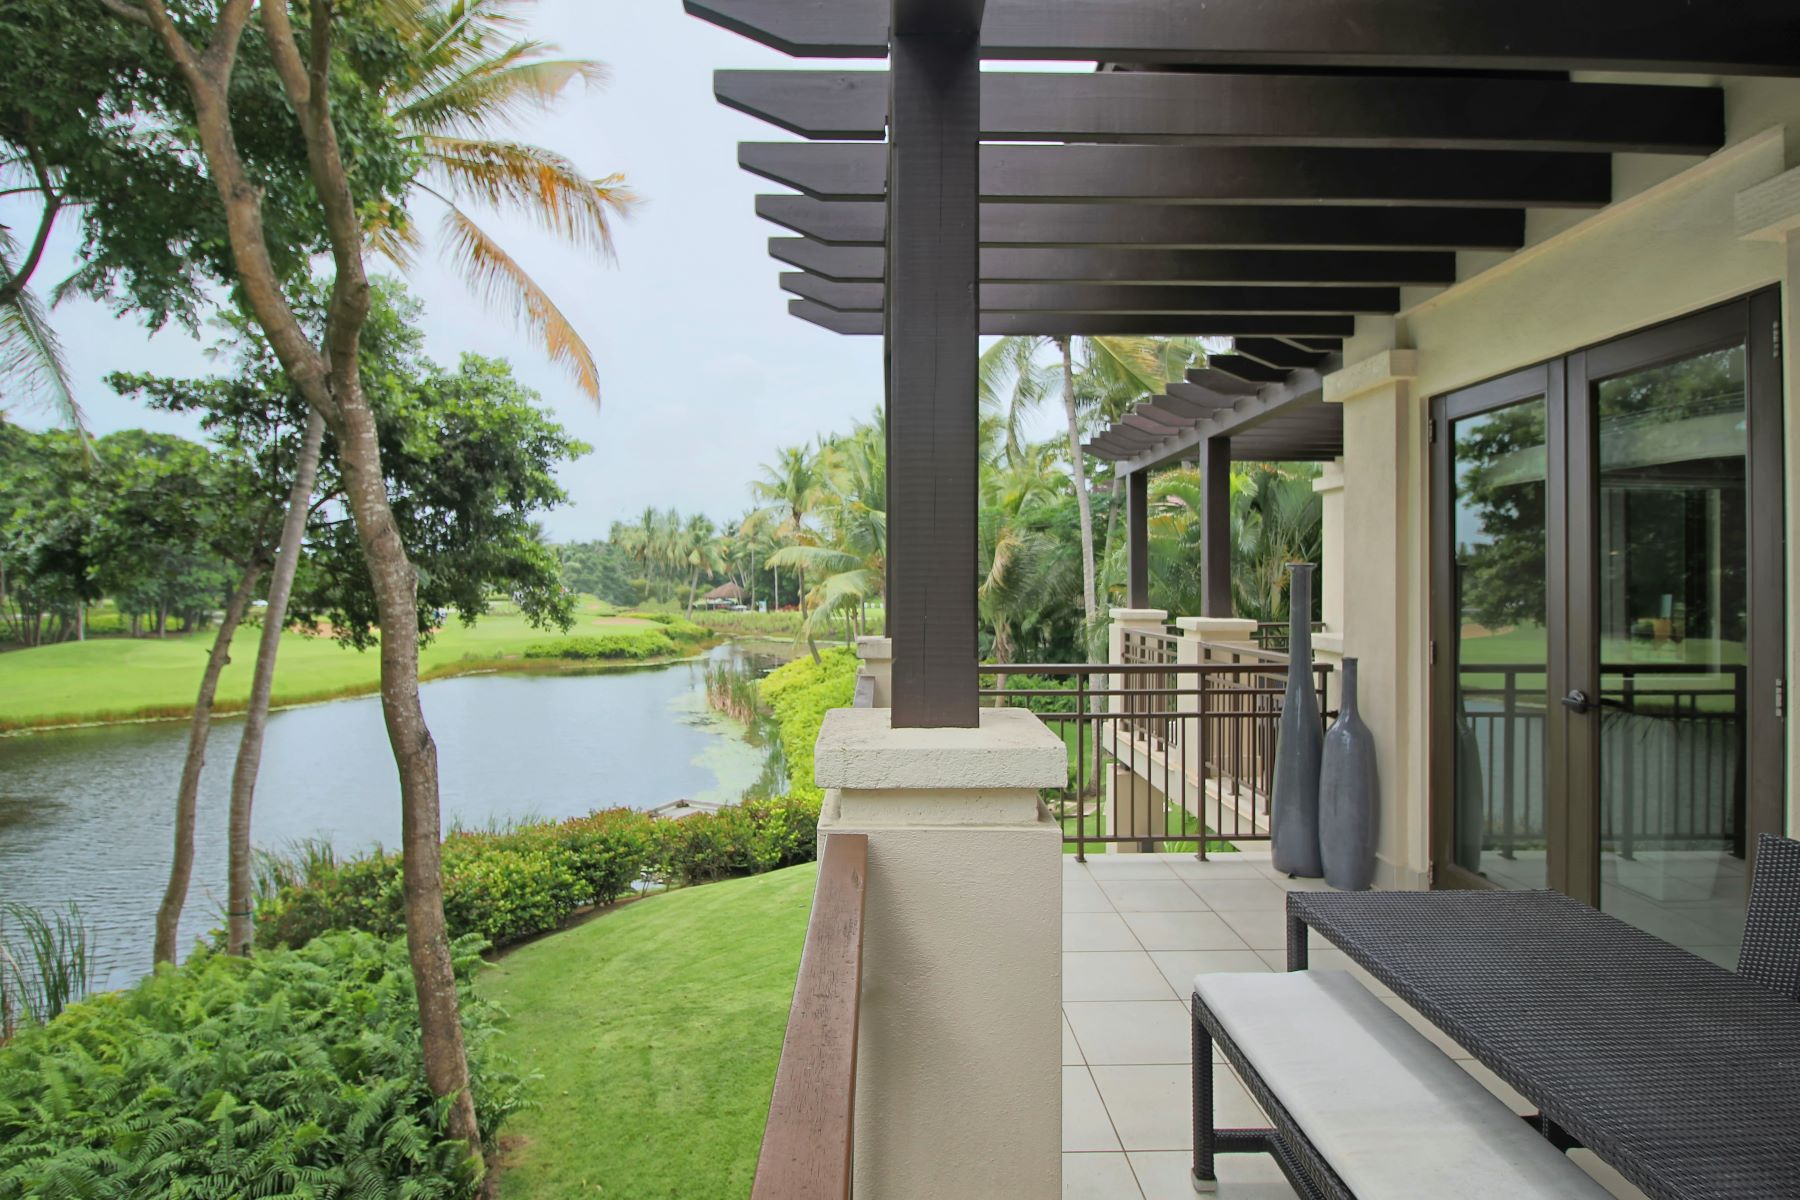 Moradia para Venda às Lakefront with Golf Views Villa State Rd. 187, Km. 4.2 Apt. 1206 Bahia Beach, 00745 Puerto Rico